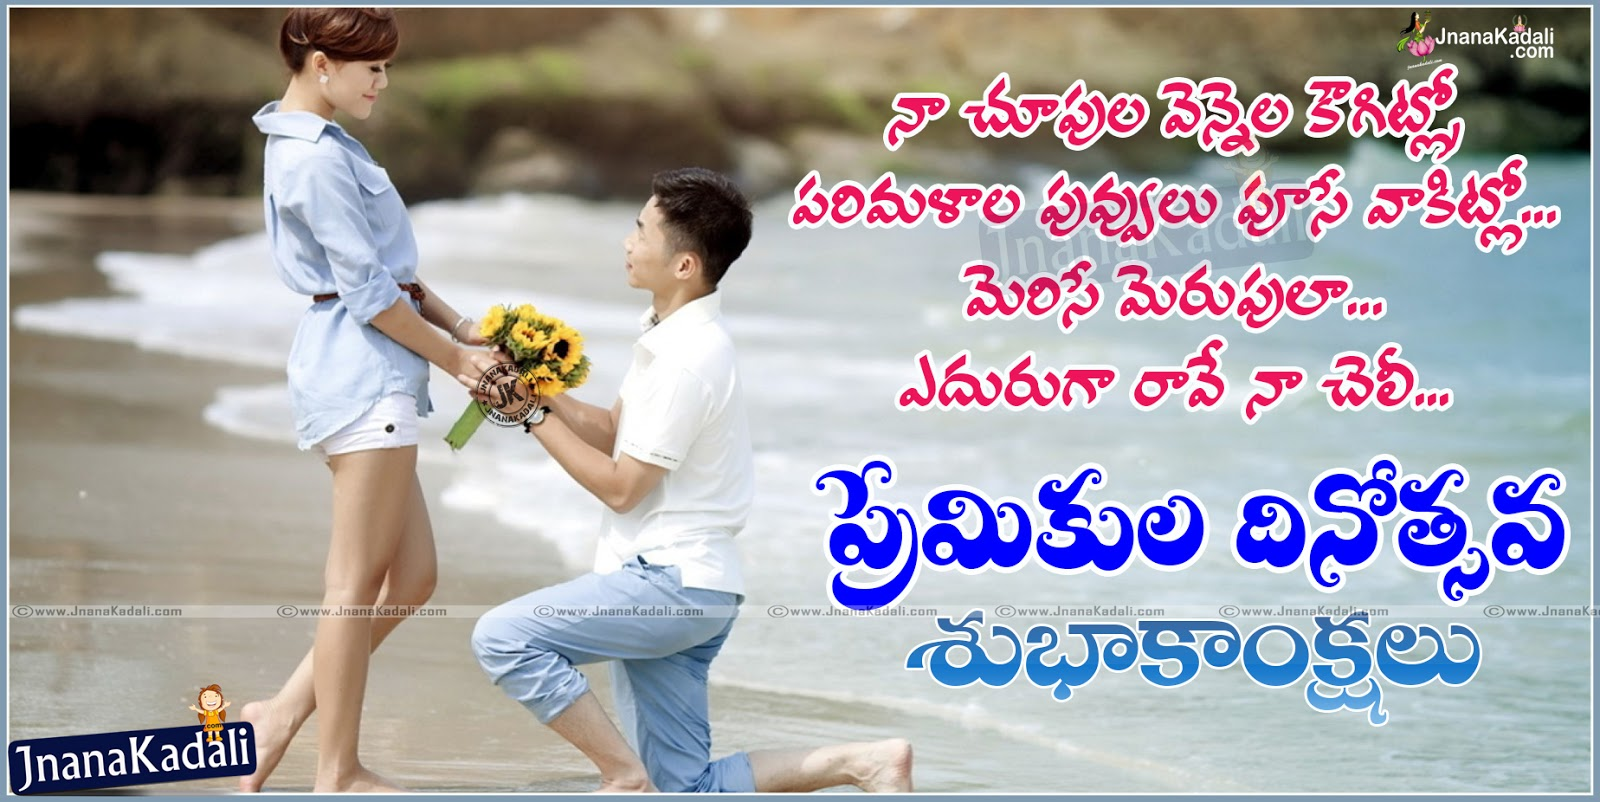 Valentines Day Special Love Quotes Greetings Wishes Hd Wallpapers